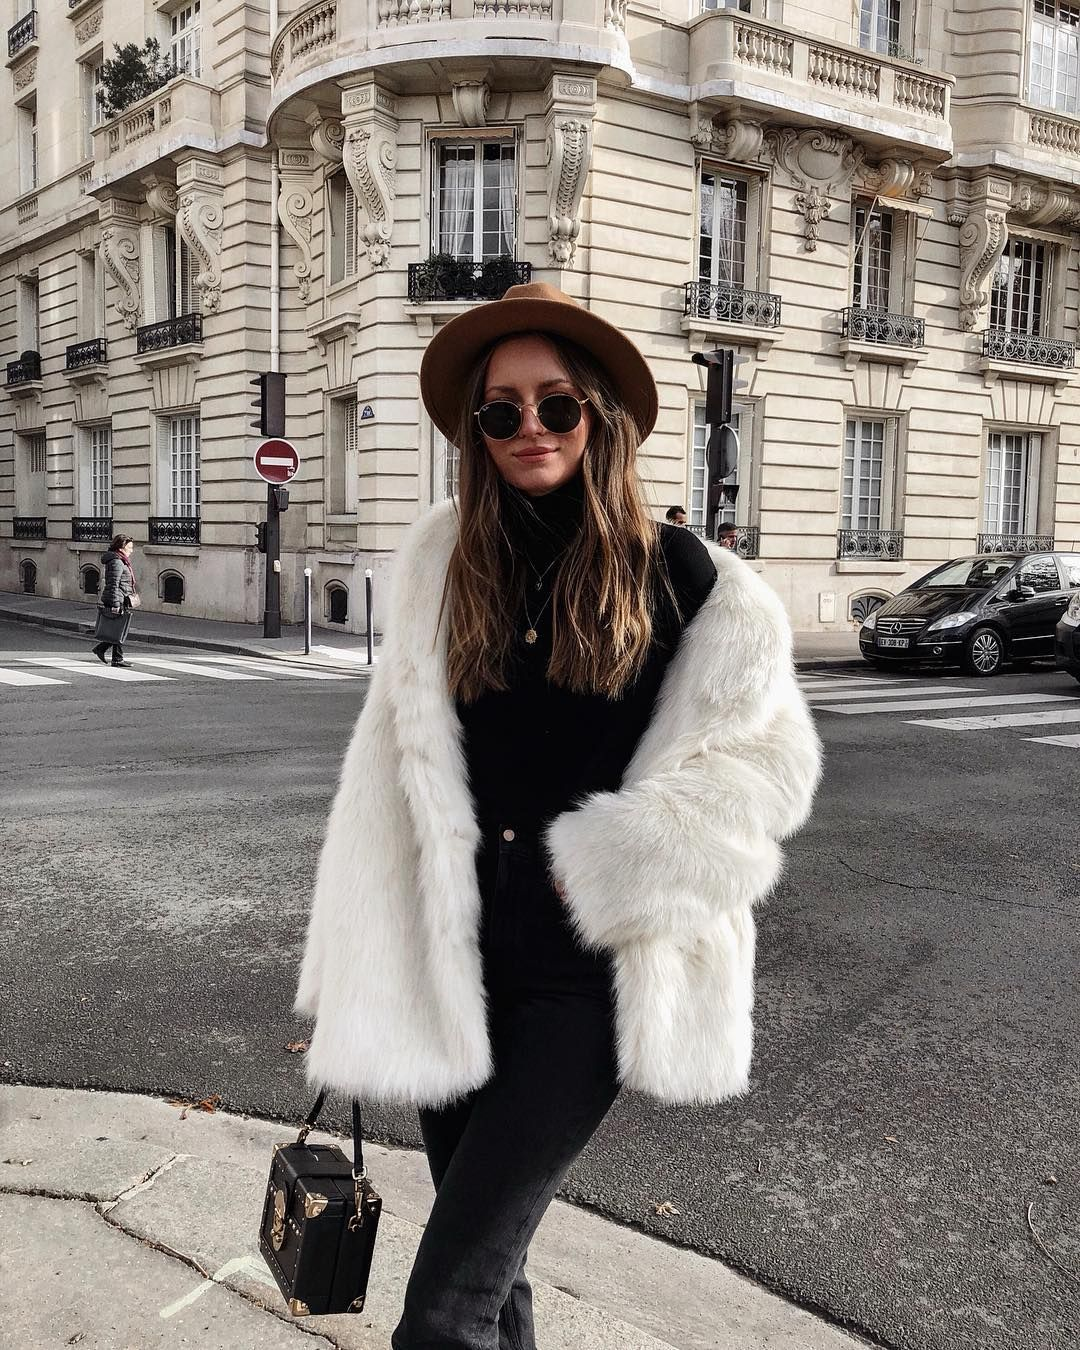 White Fur Coat Fur Jacket Outfit Coat Outfit Casual Fluffy Coat Outfit [ 1350 x 1080 Pixel ]